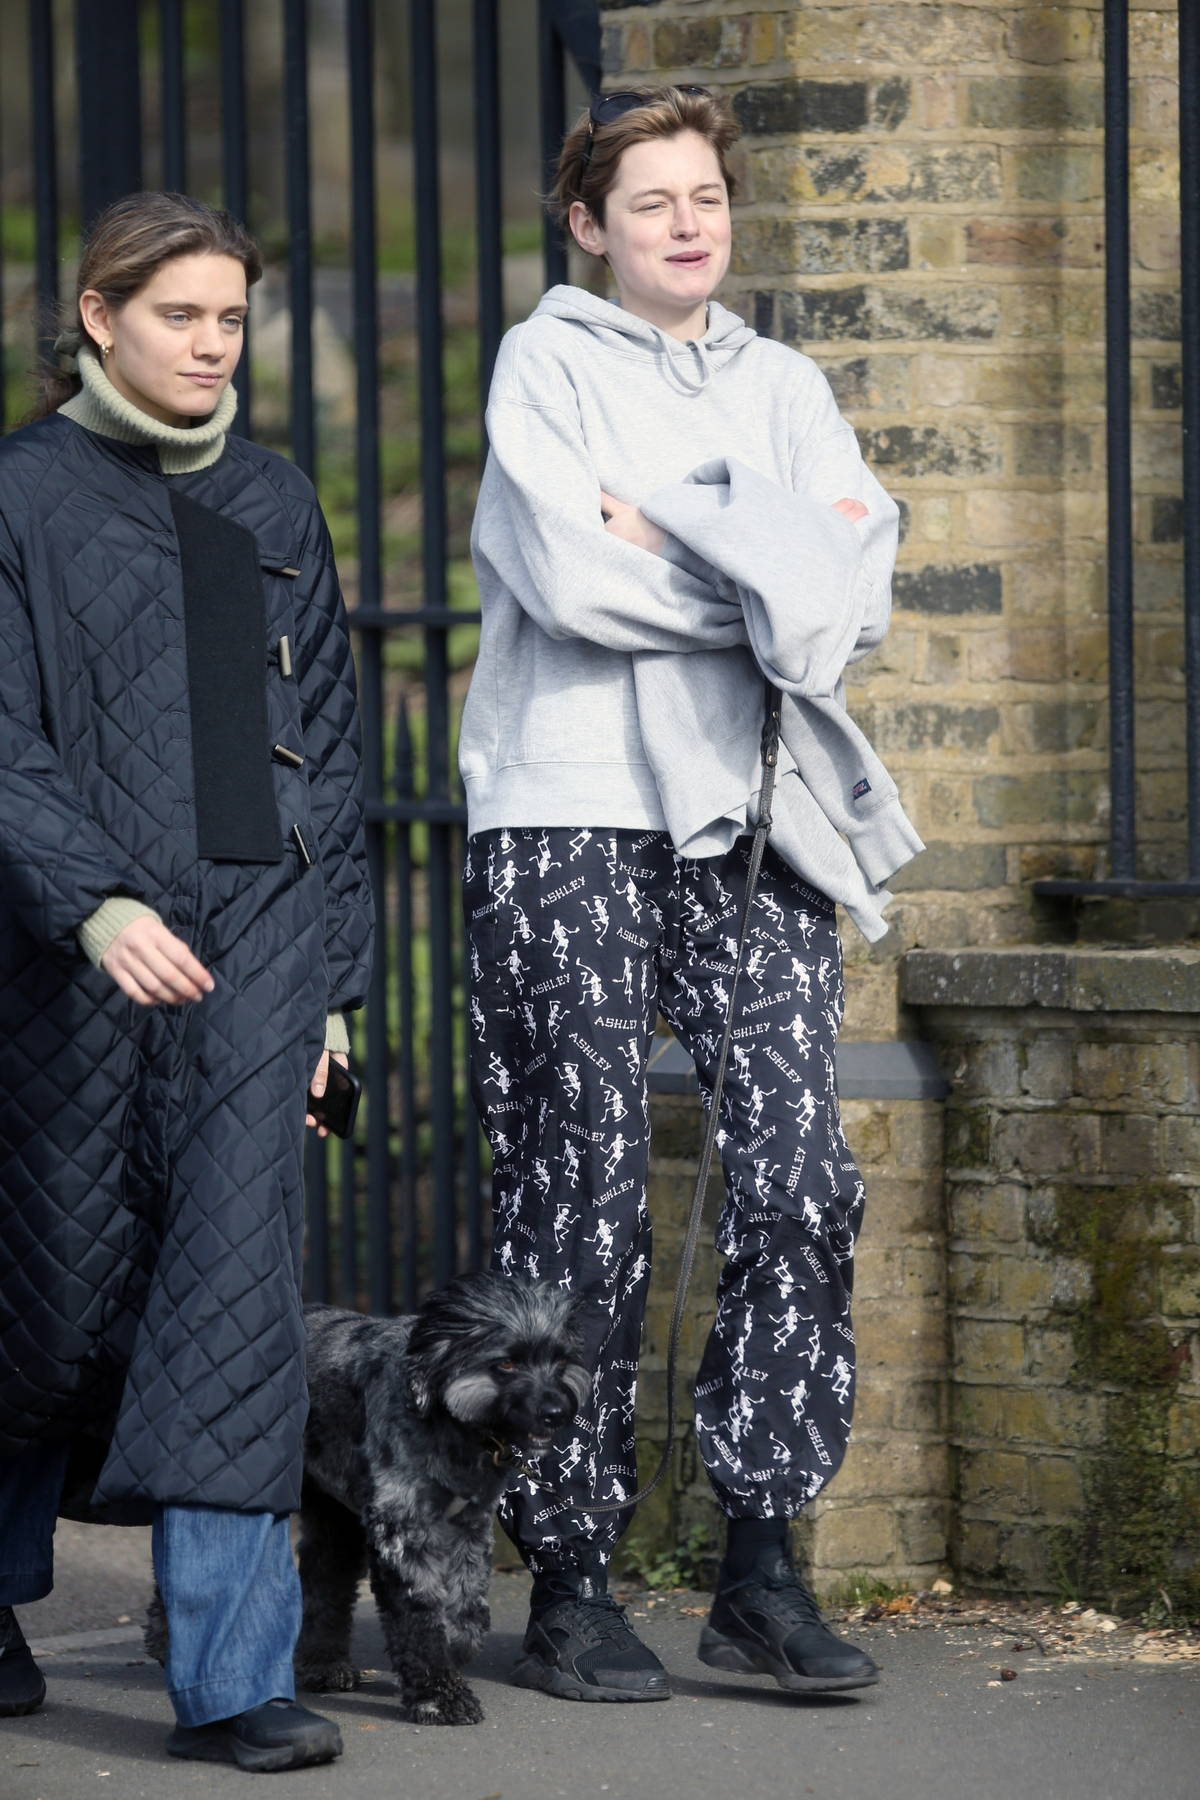 Emma Corrin keeps it casual as she steps out to walk her dog with a friend in London, UK